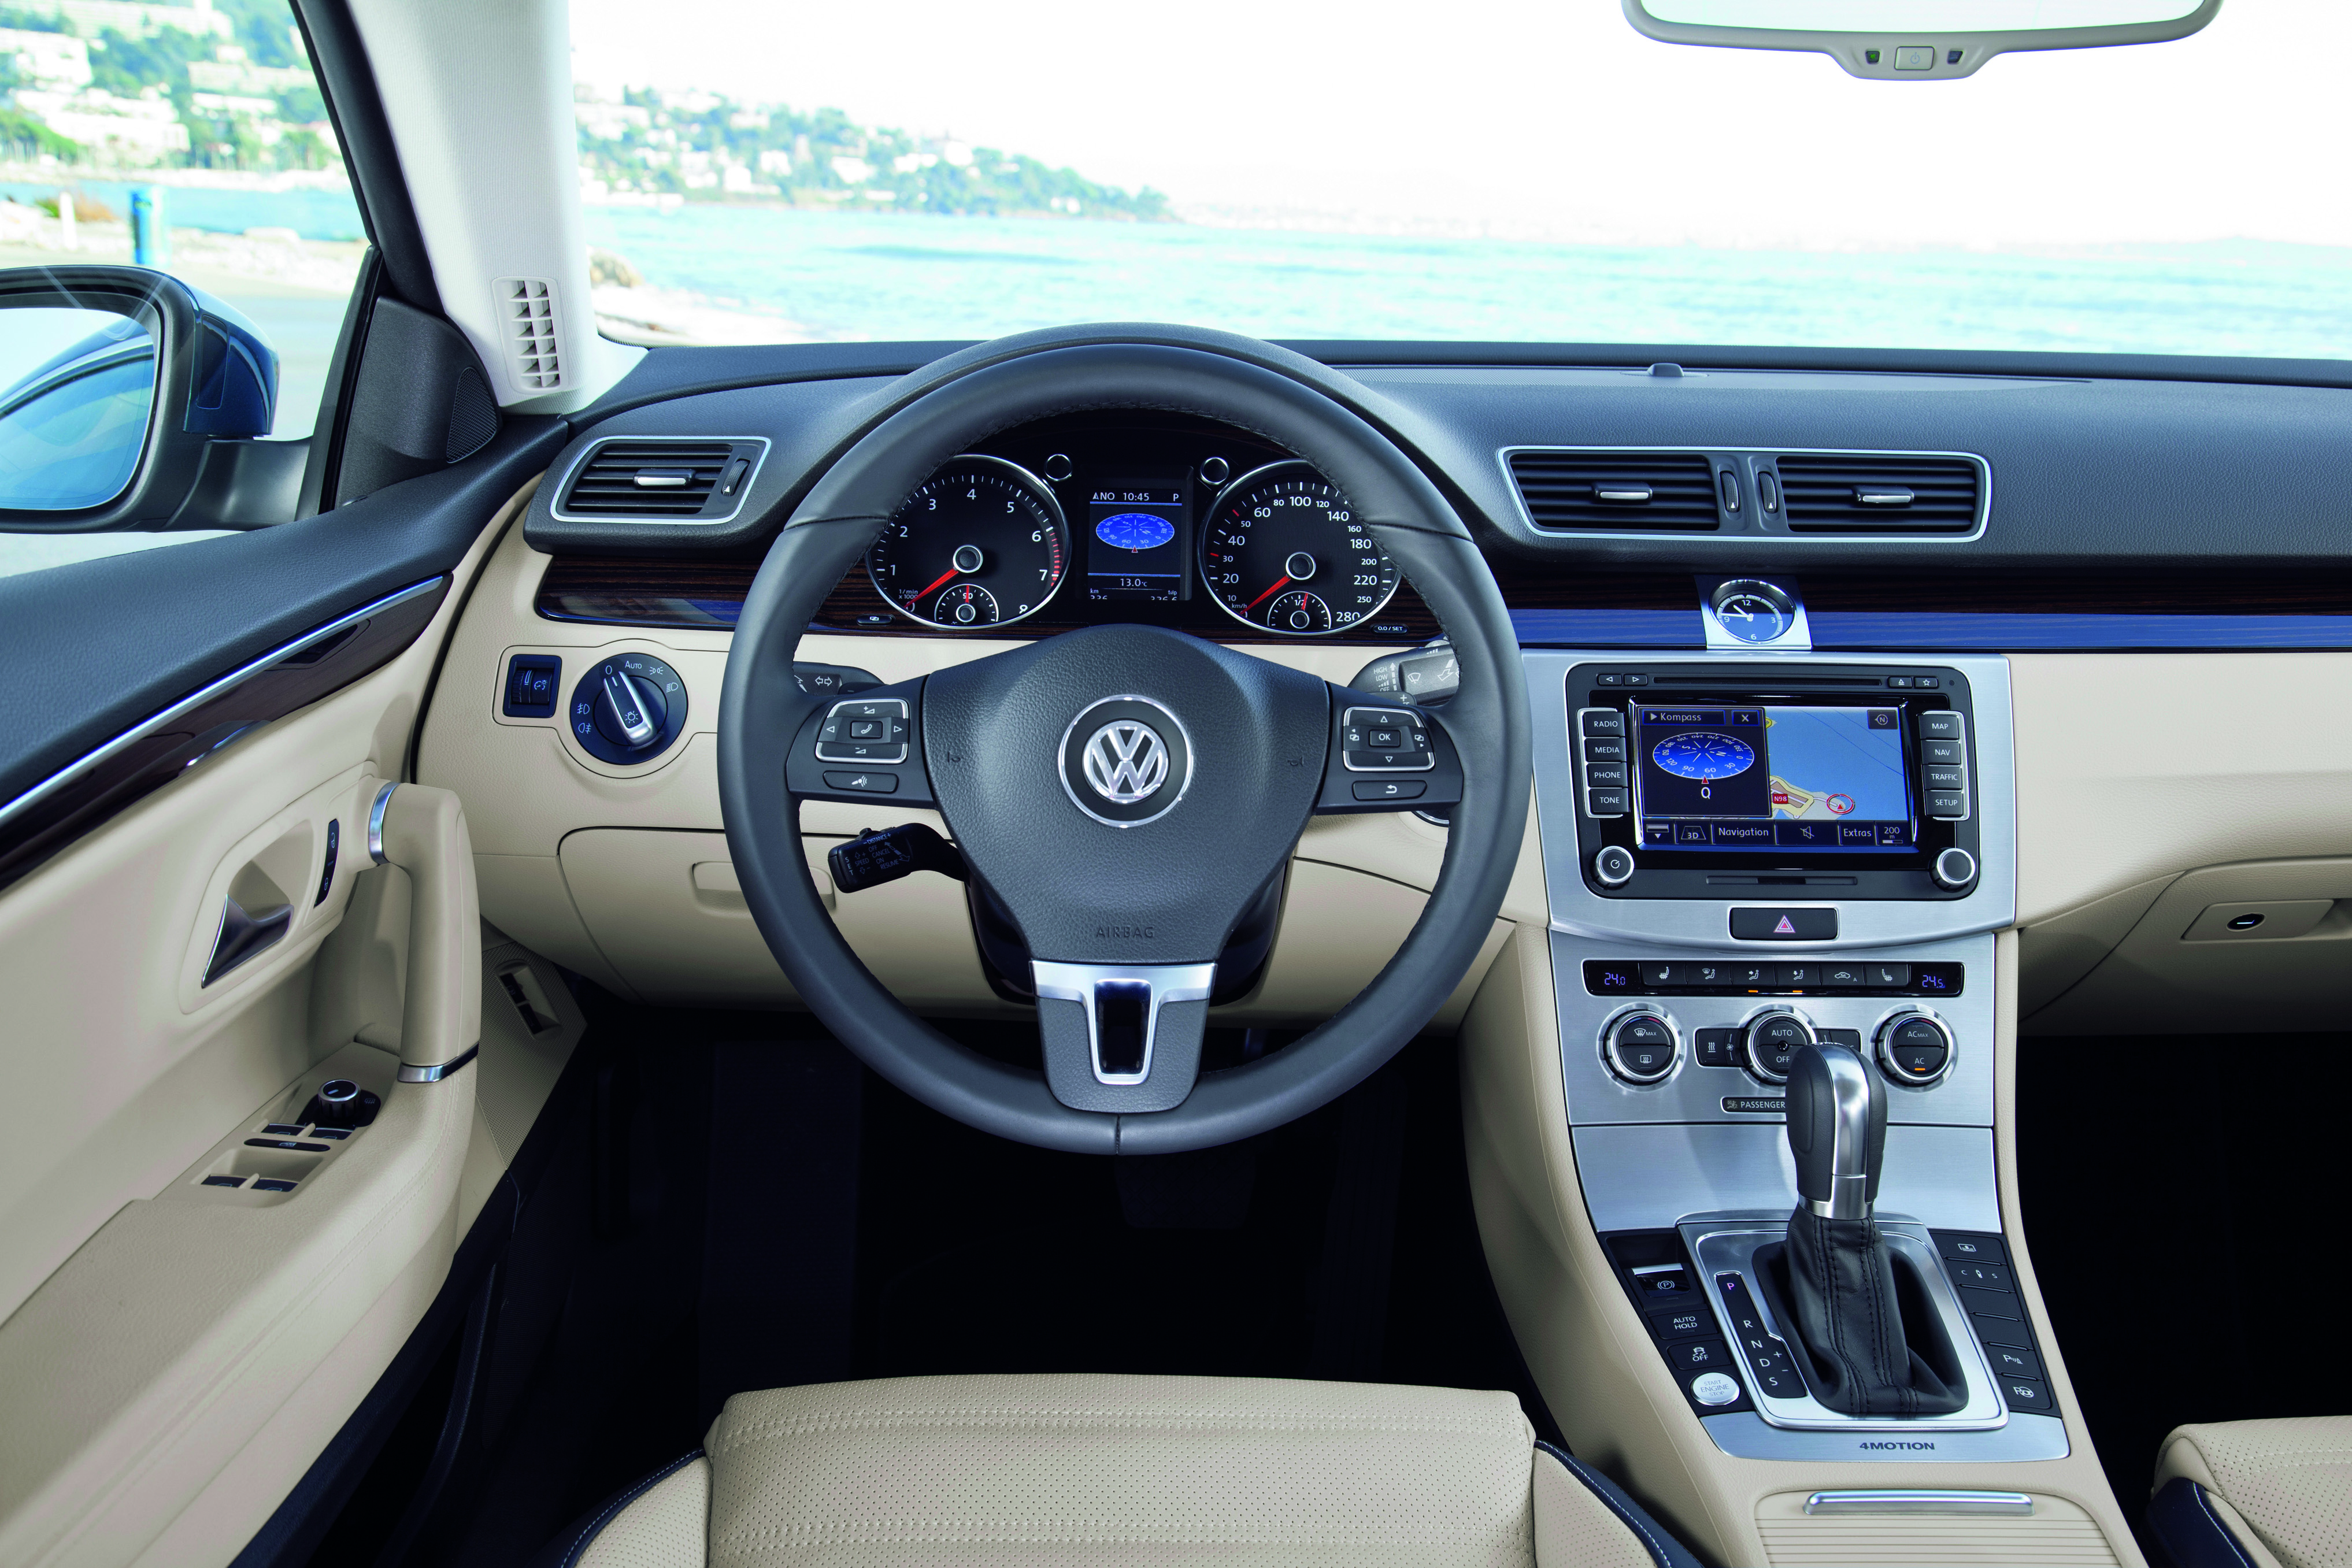 2013 volkswagen cc the looks of a coupe and the versatility of a sedan georgetown volkswagen. Black Bedroom Furniture Sets. Home Design Ideas